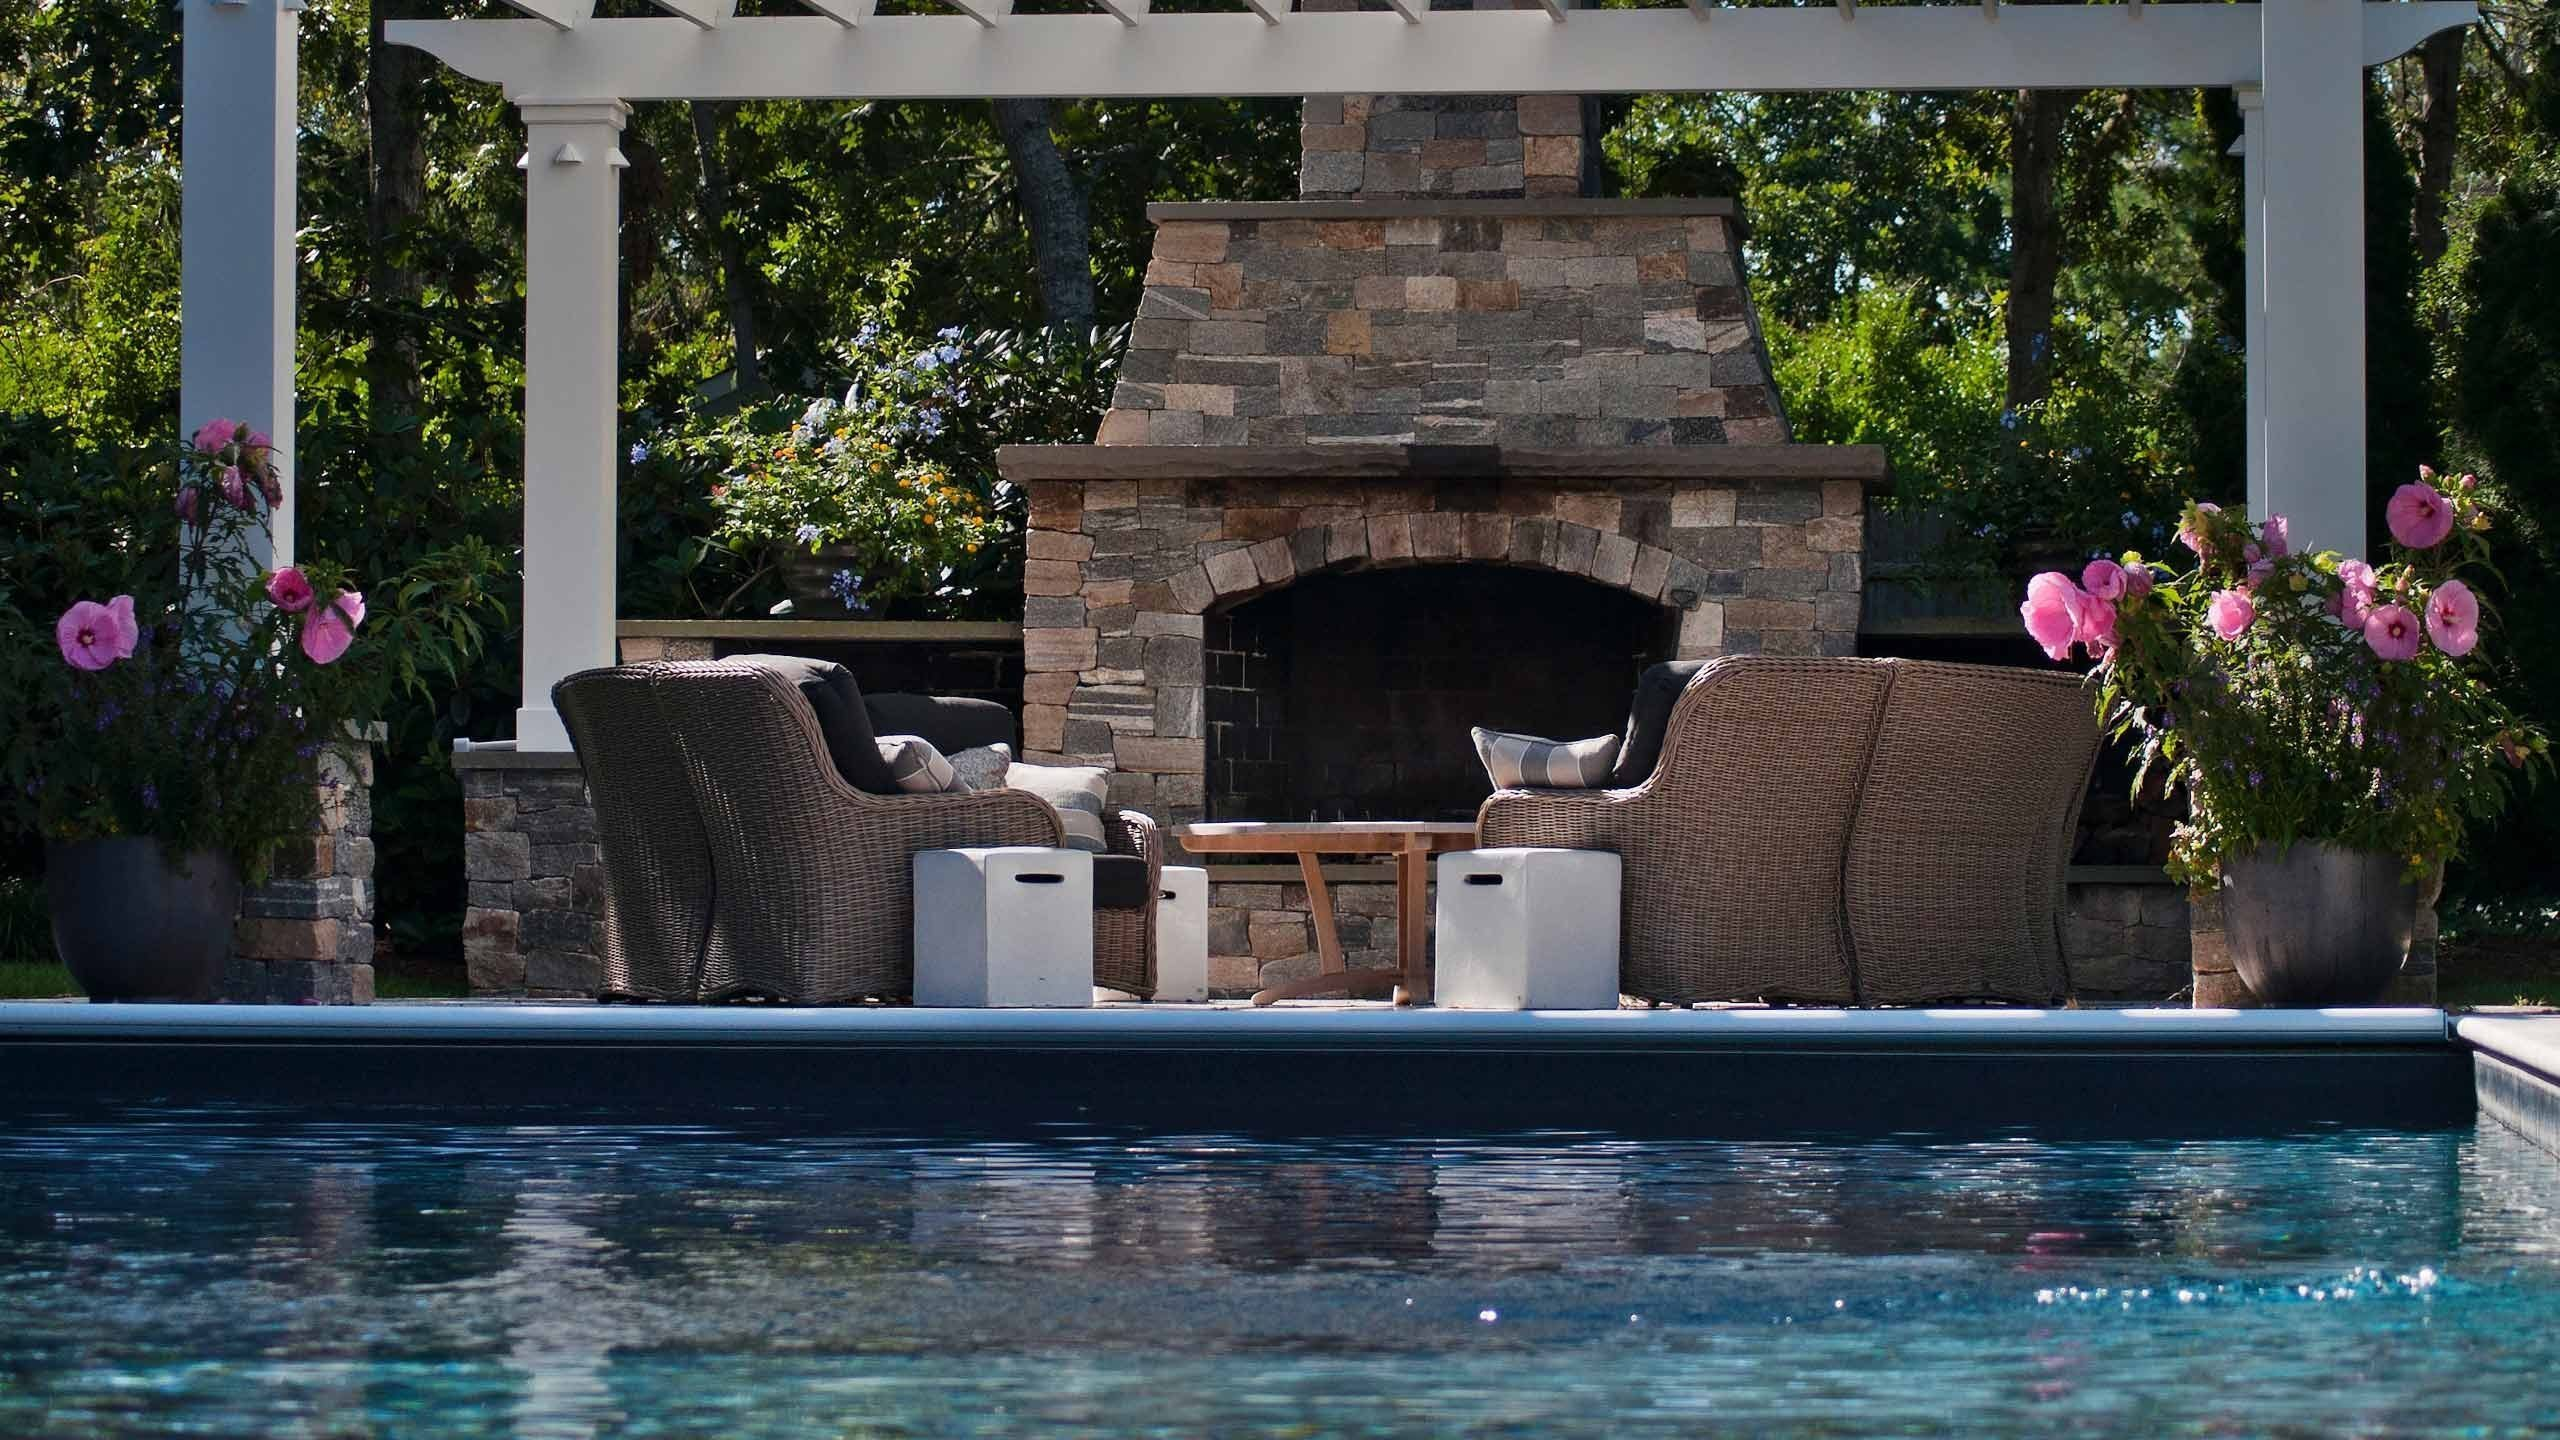 Outdoor fireplace in patio next to custom swimming pool